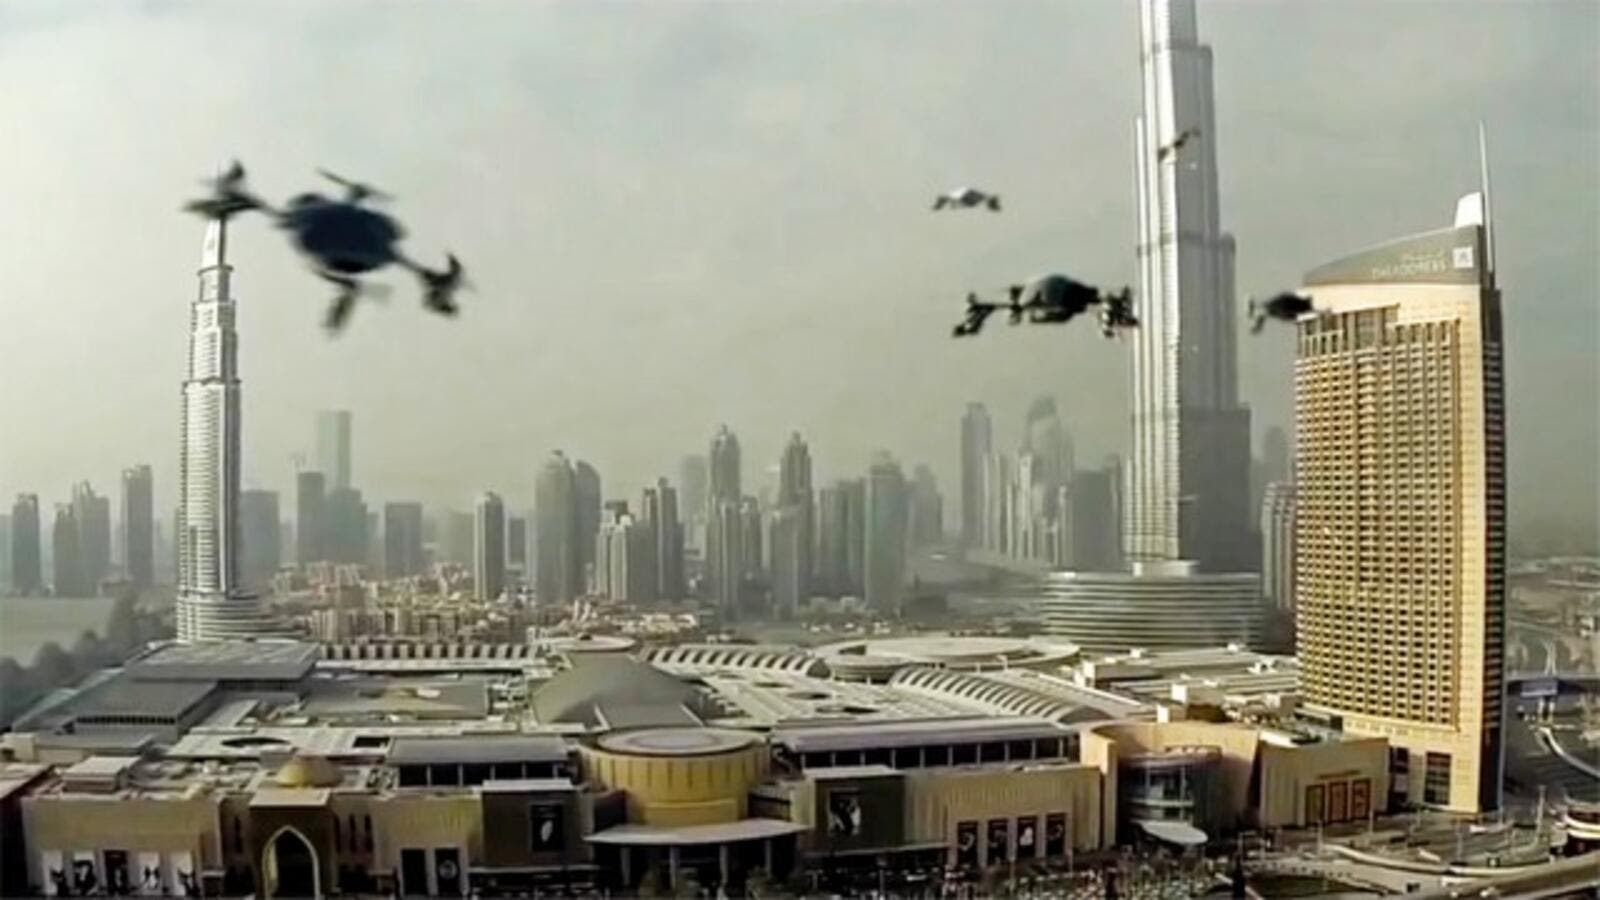 Dubai hosted the World Drone Prix on March 11, 2016. (Twitter)